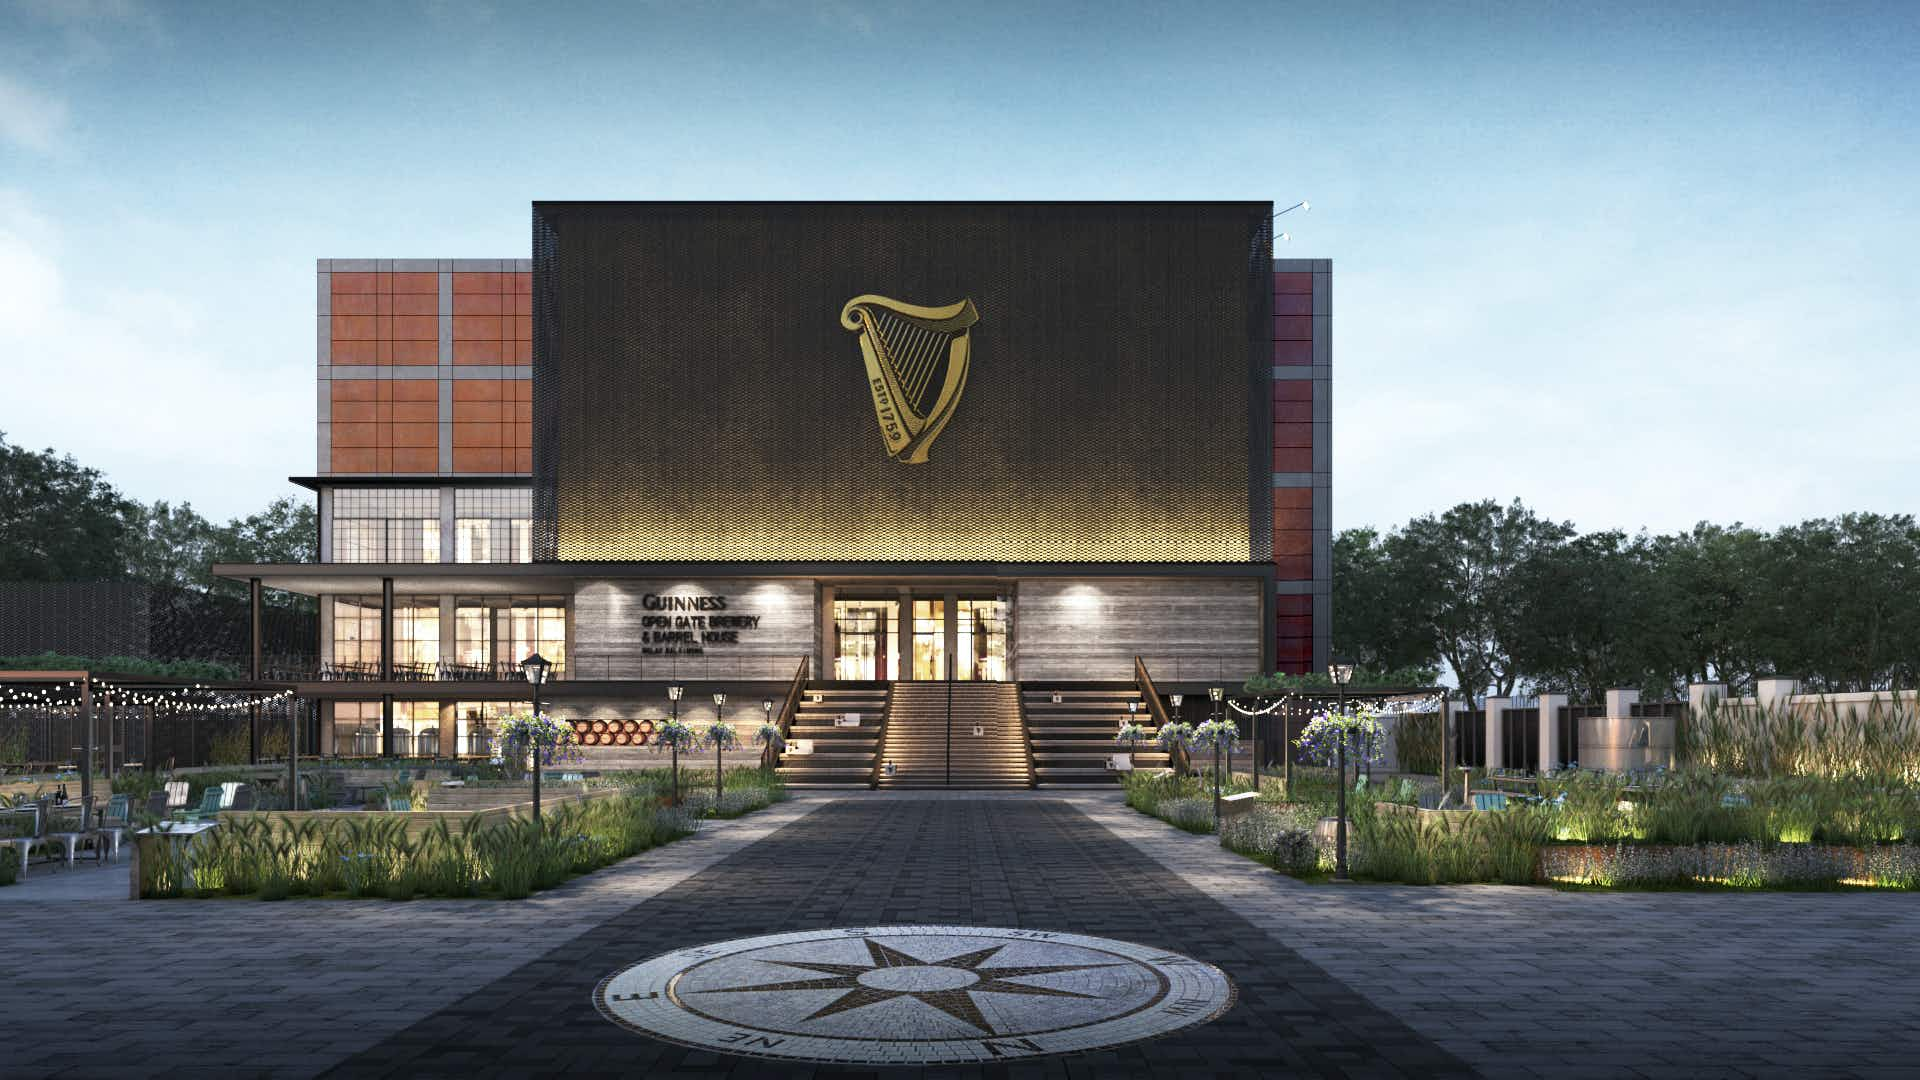 Guinness is bringing its most experimental beers to its new Baltimore brewery this summer